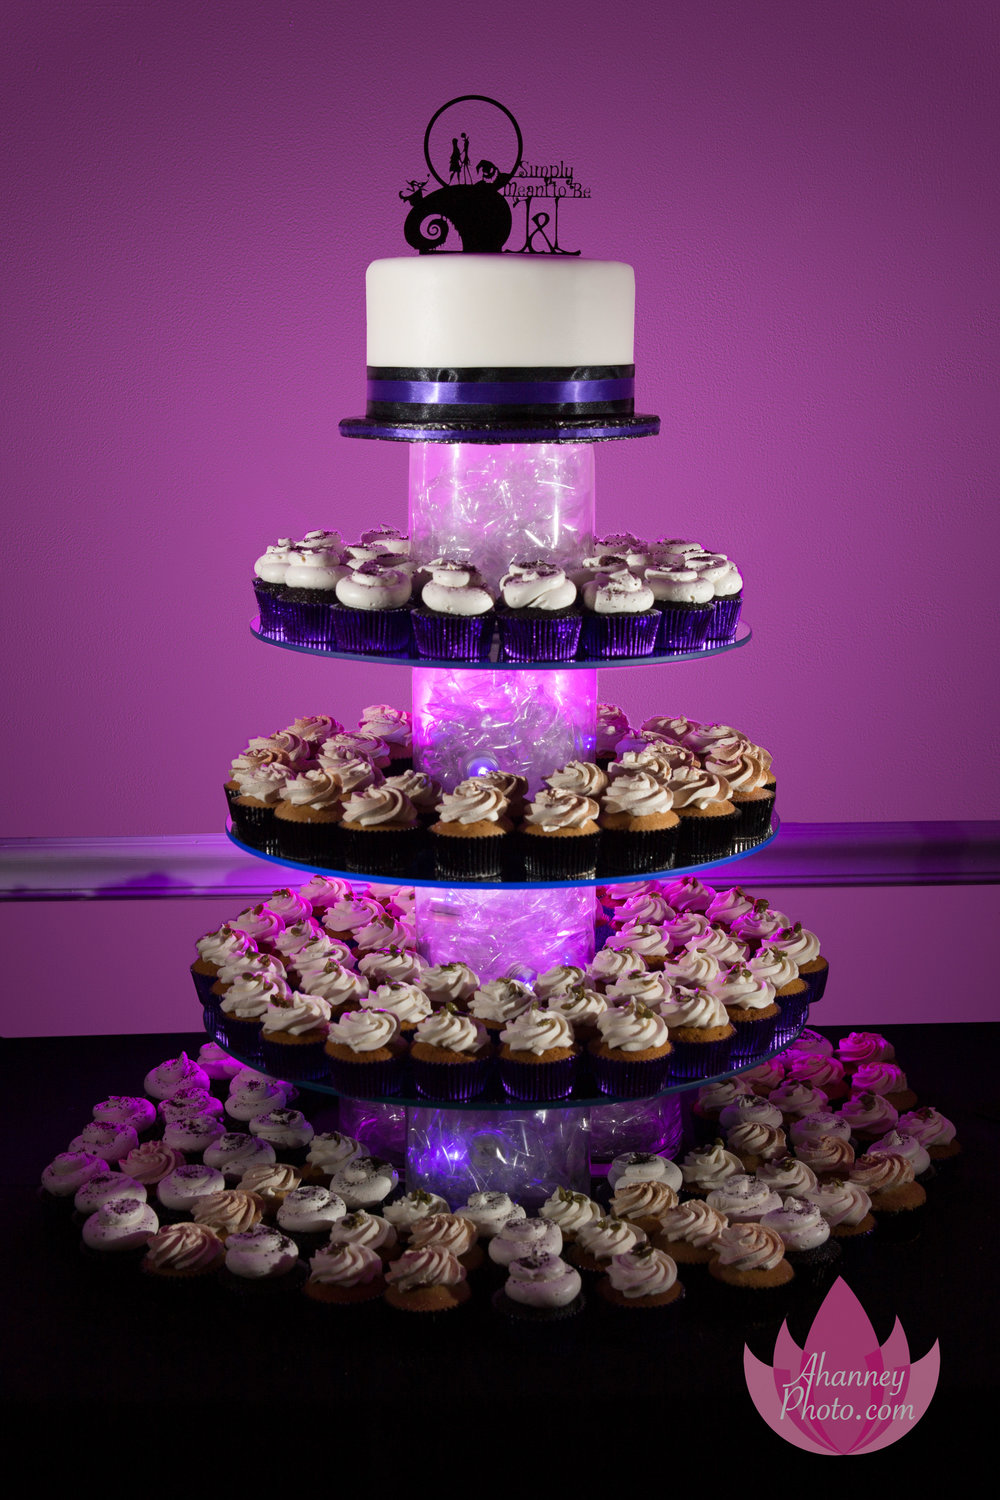 Wedding Cake Cupcake Purple Drexel Hill Pennsylvania New Jersey Philadelphia Delaware Anastasia Hanney Photography AHanneyPhoto